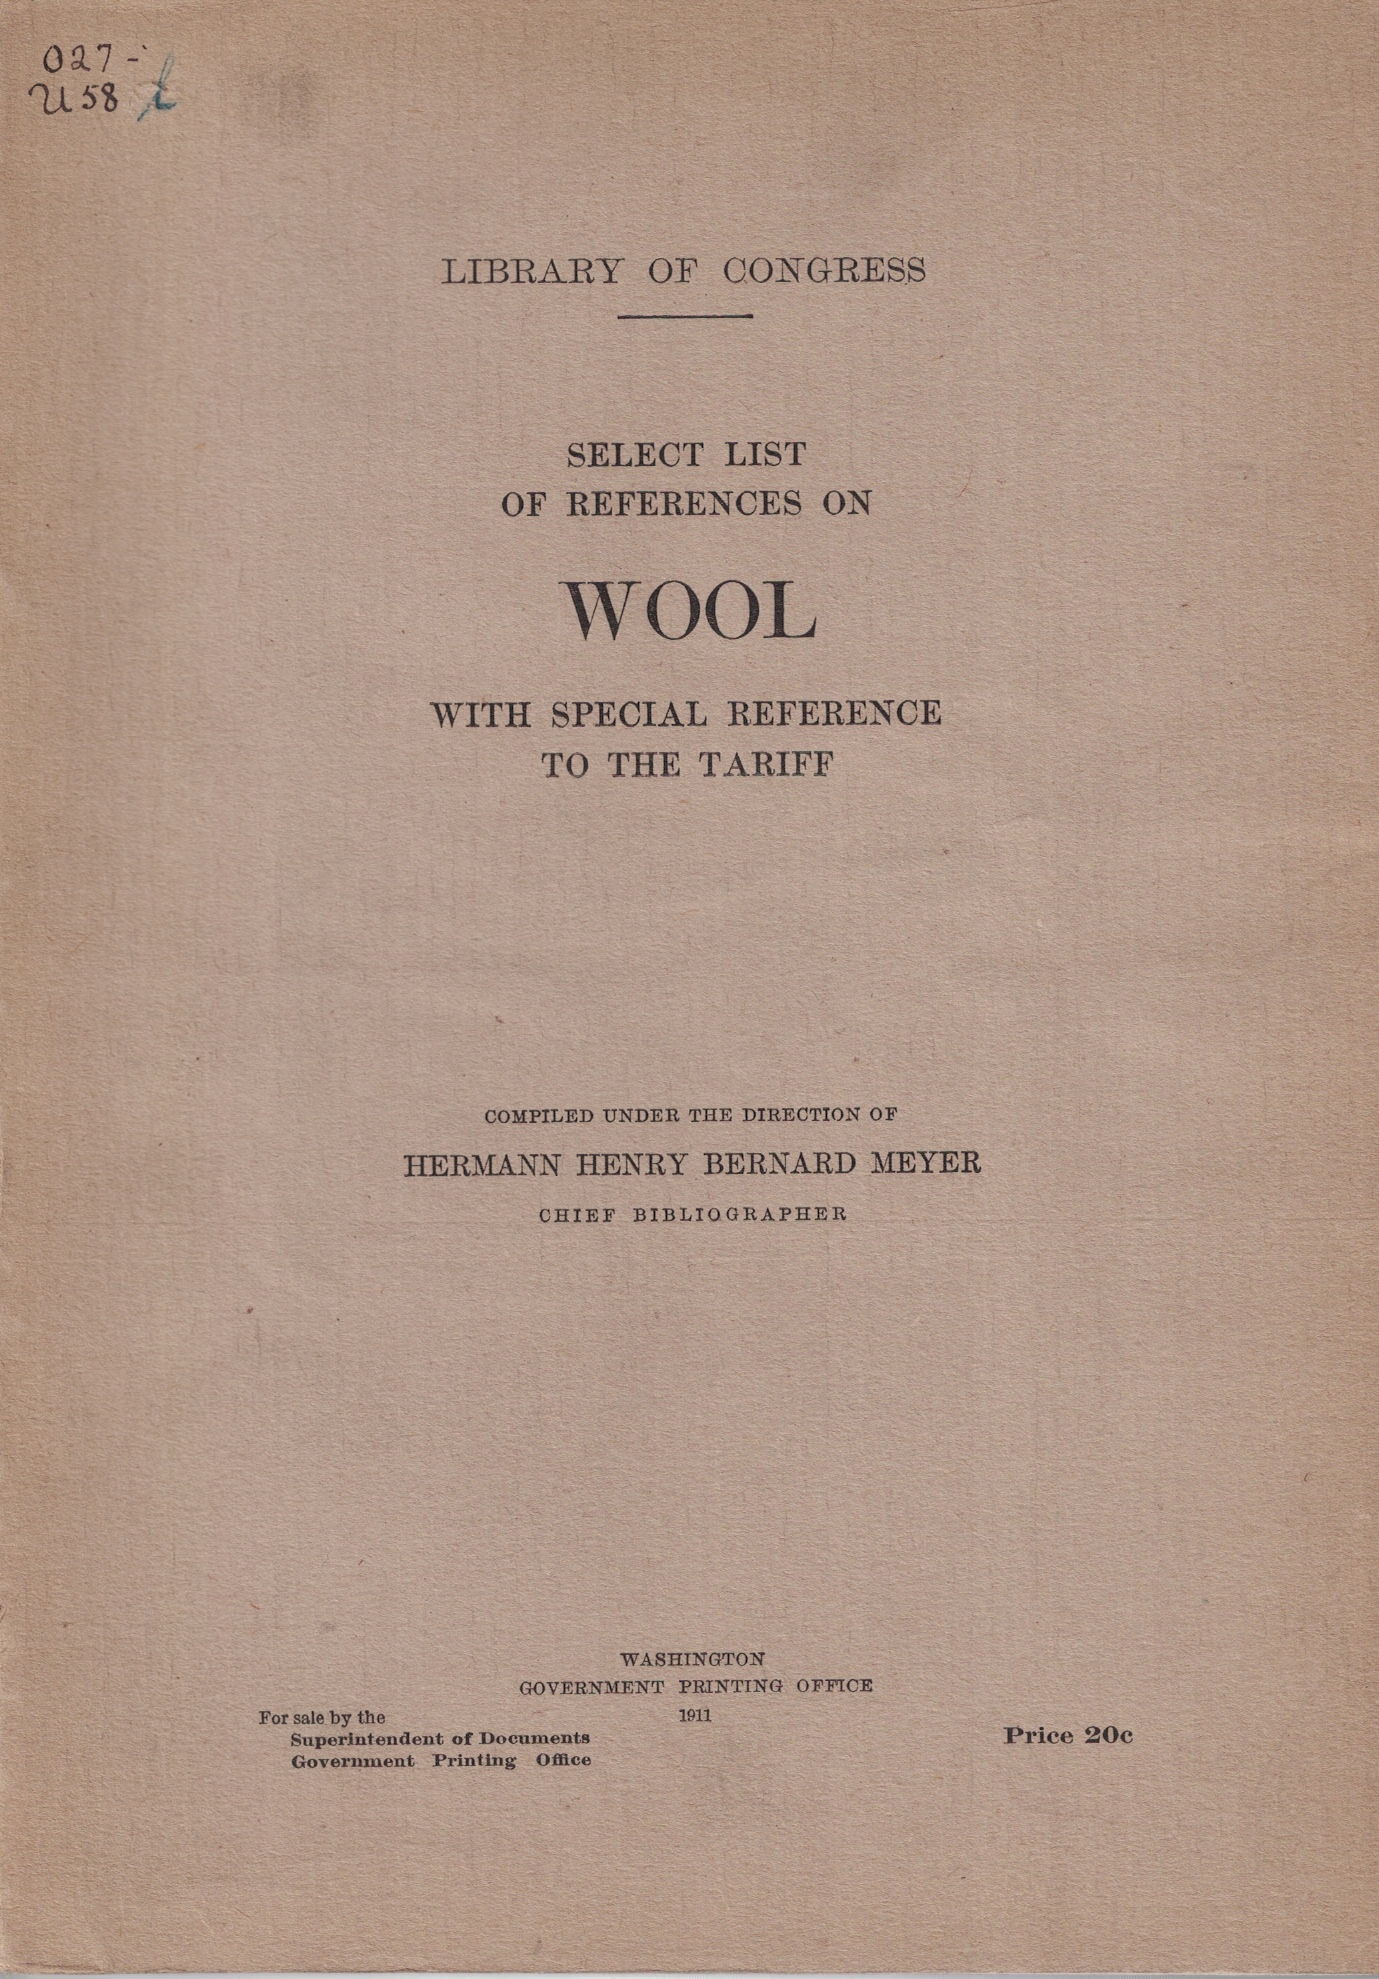 Image for Select List of References on Wool, with Special Reference to the Tariff (Library of Congress)